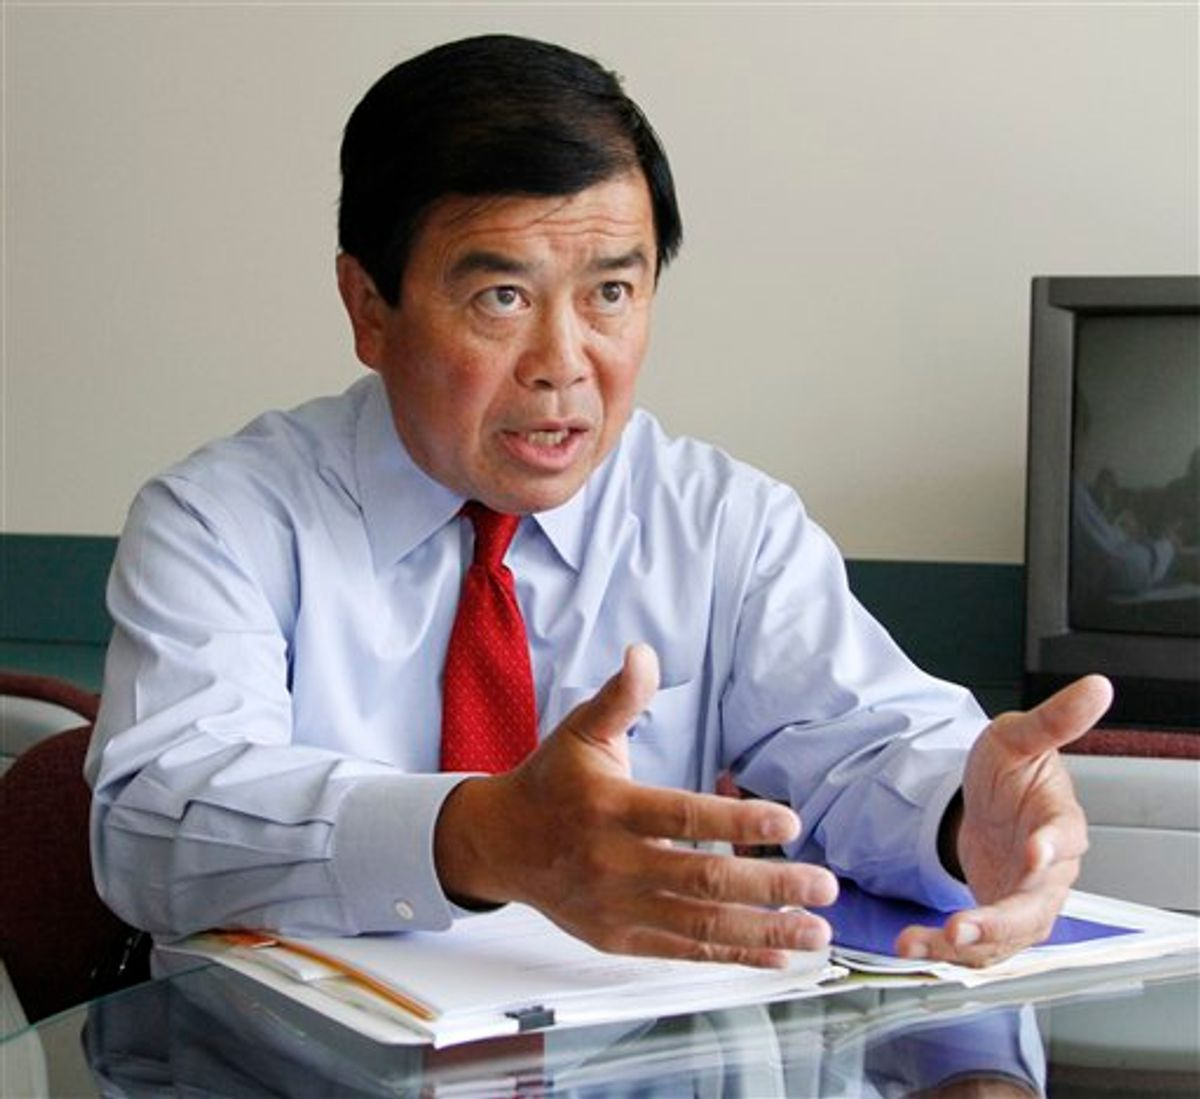 """FILE - In this Aug. 17, 2010 file photo, Congressman David Wu, D-Ore., speaks during an interview in Portland, Ore. Wu is calling a published report about an alleged unwanted sexual encounter with a young woman """"very serious"""" but has not yet said whether the accusation is true. The Oregonian reports that a young woman from California has accused the Democrat of an unwanted sexual encounter last November. The newspaper said the information came from sources who wanted to remain anonymous. (AP Photo/Don Ryan, File) (AP)"""